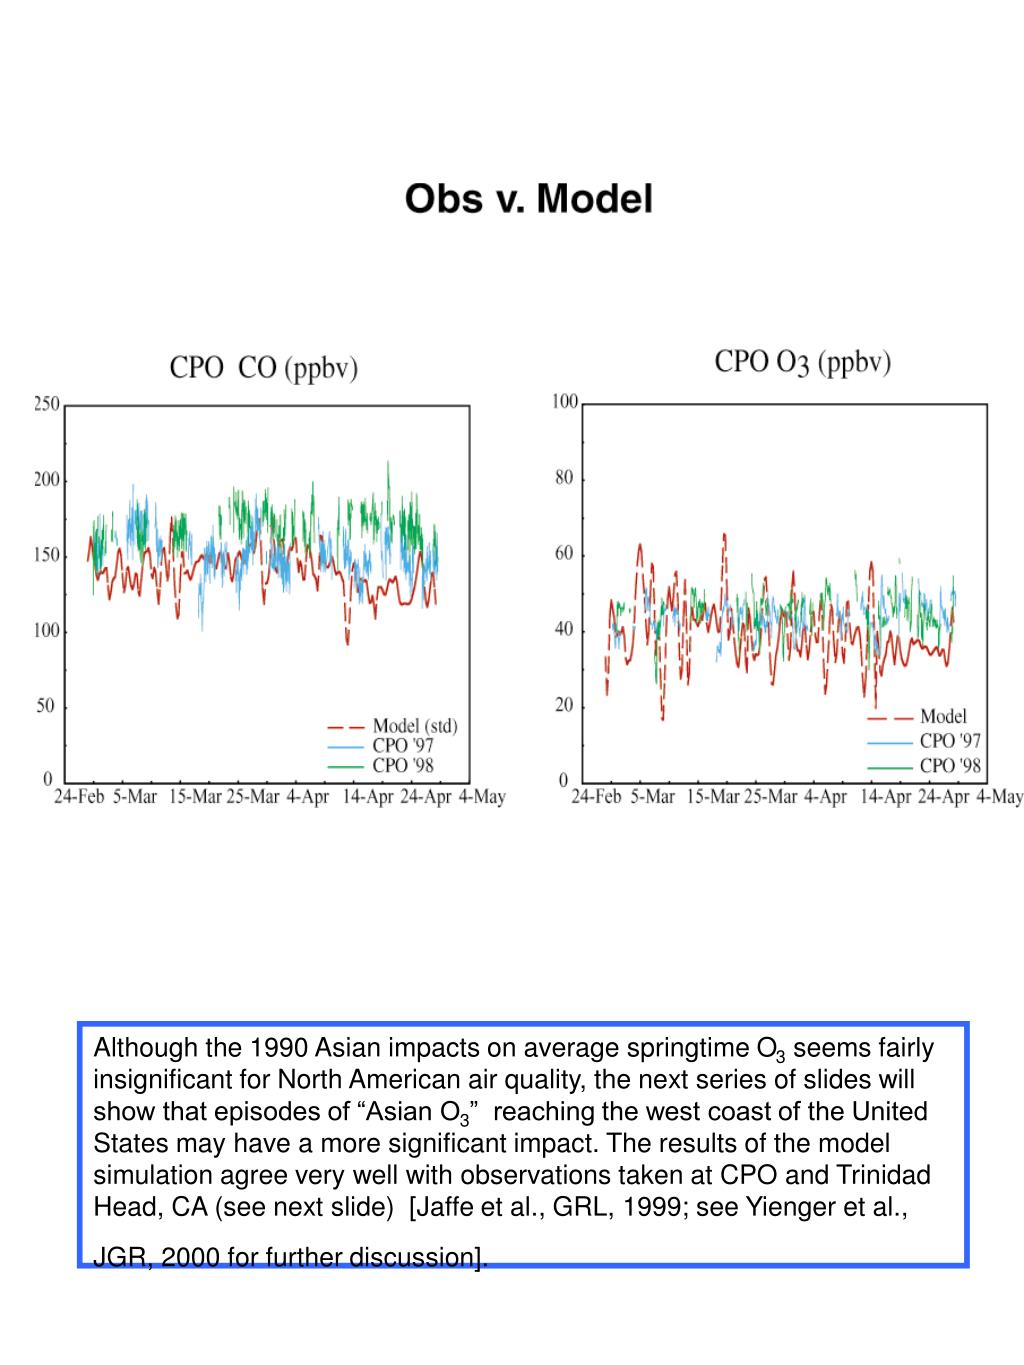 Although the 1990 Asian impacts on average springtime O